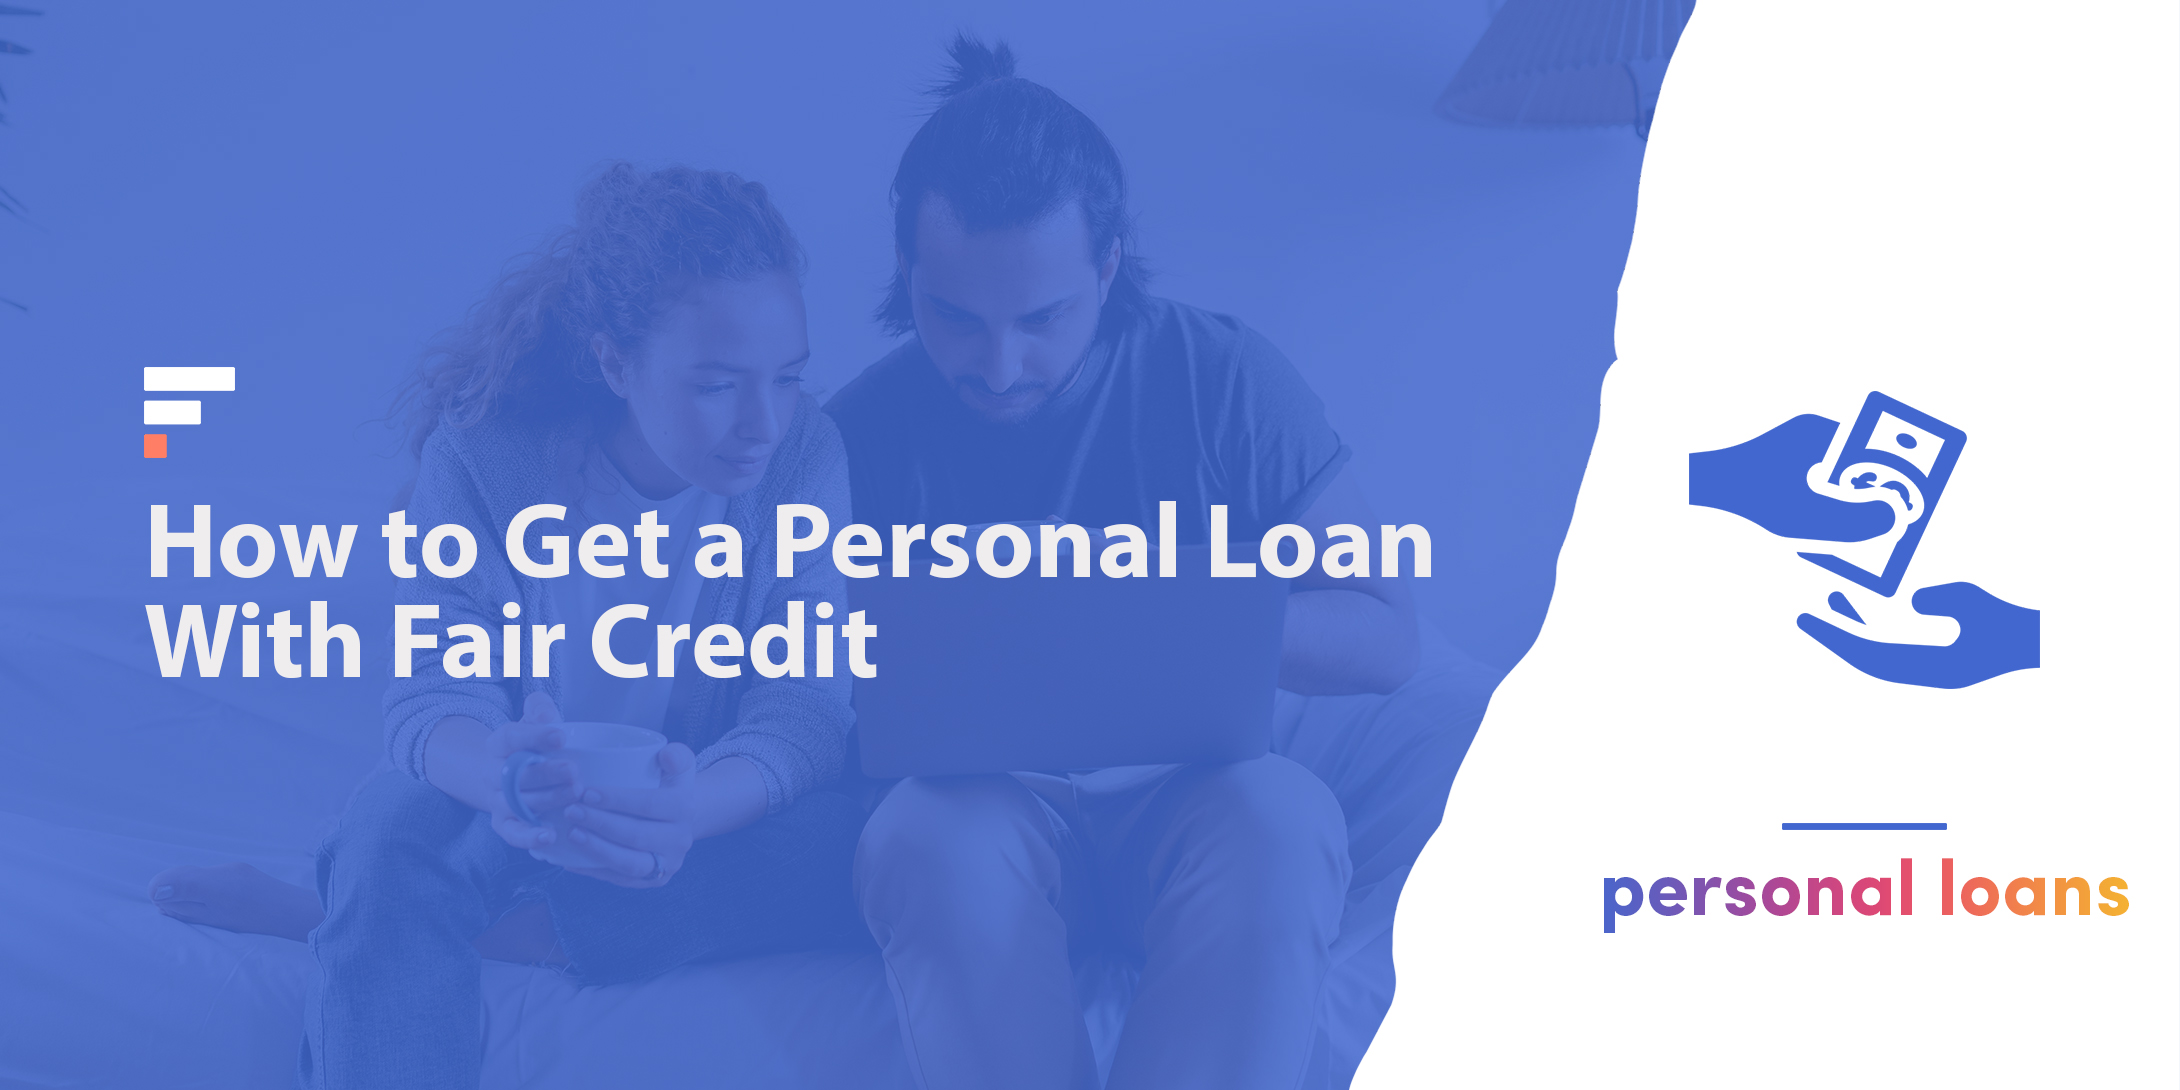 How to get a personal loan with fair credit